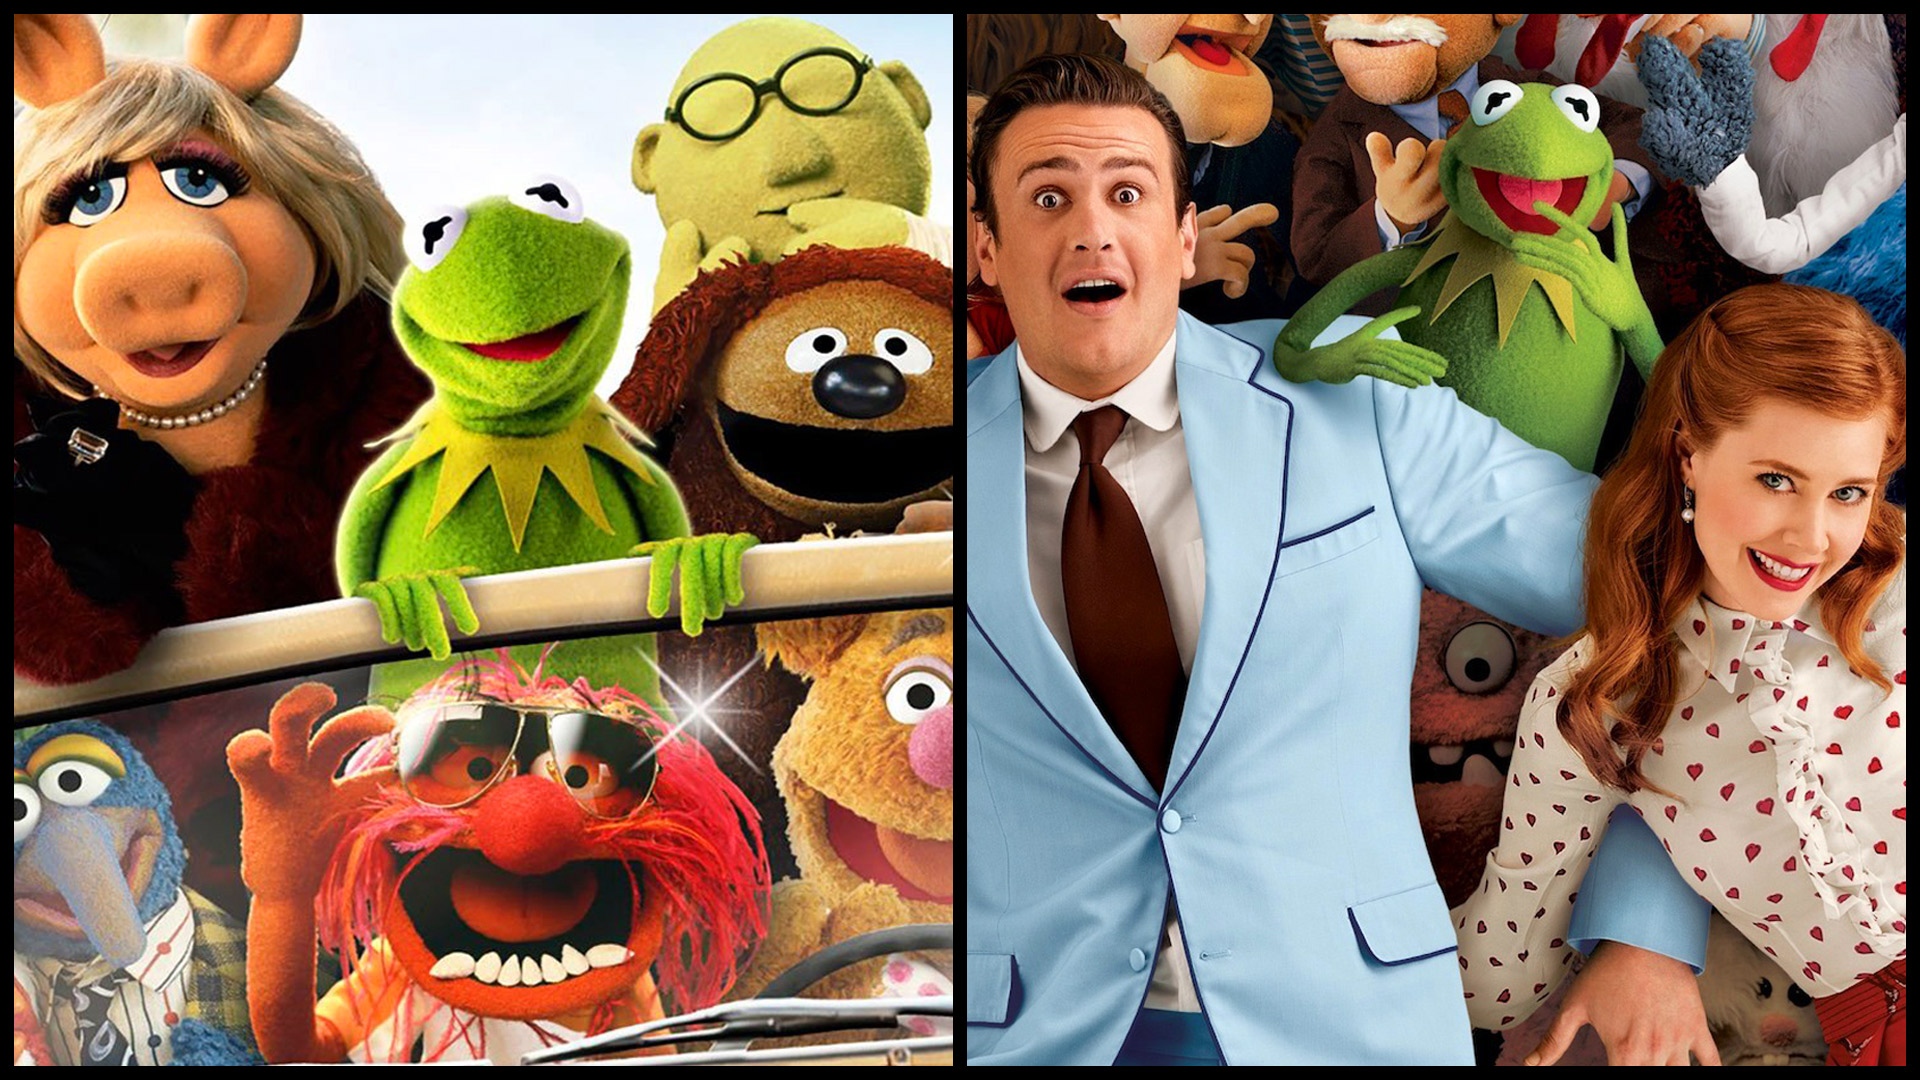 Movie Time! Man or Muppet? It's The Muppet Movie (1979) and The Muppets (2011)